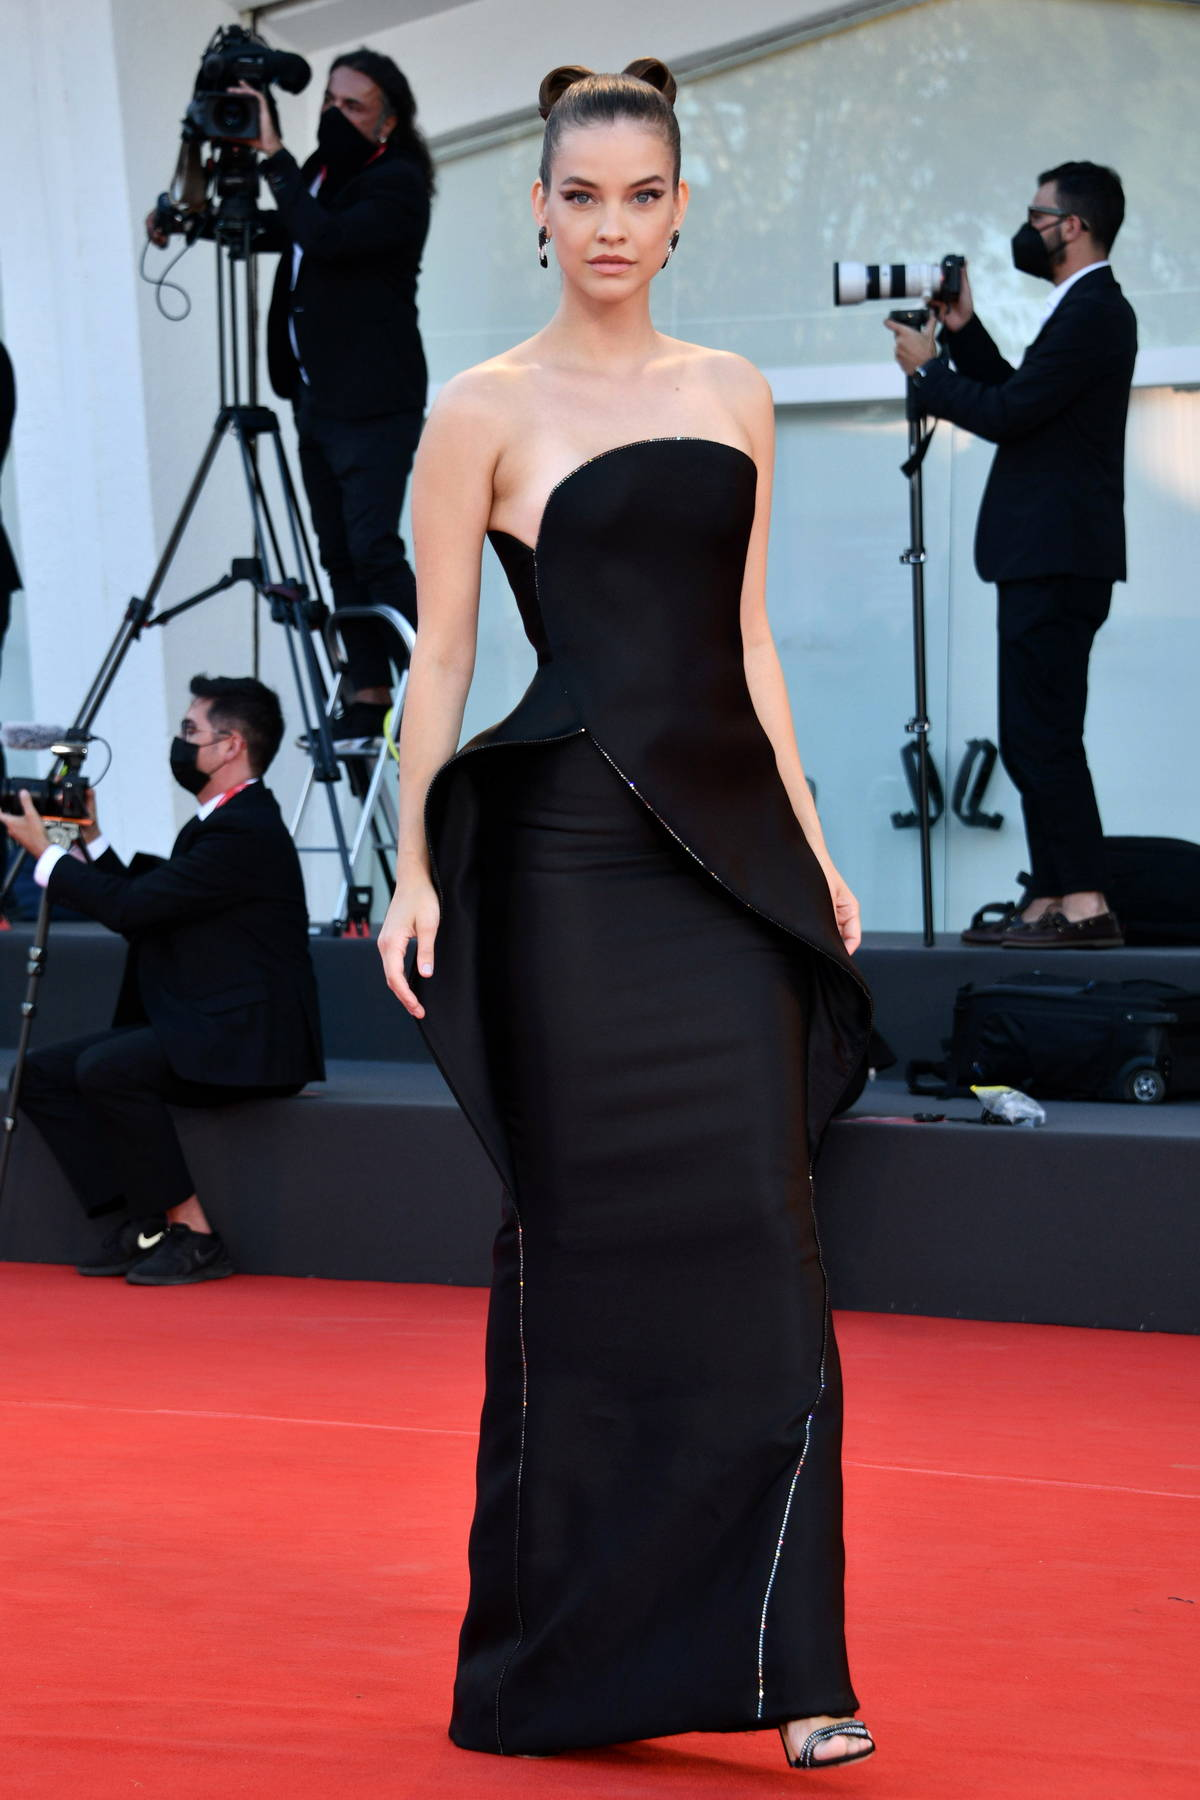 Barbara Palvin attends the Premiere of 'Madres Paralelas' during the 78th Venice International Film Festival in Venice, Italy